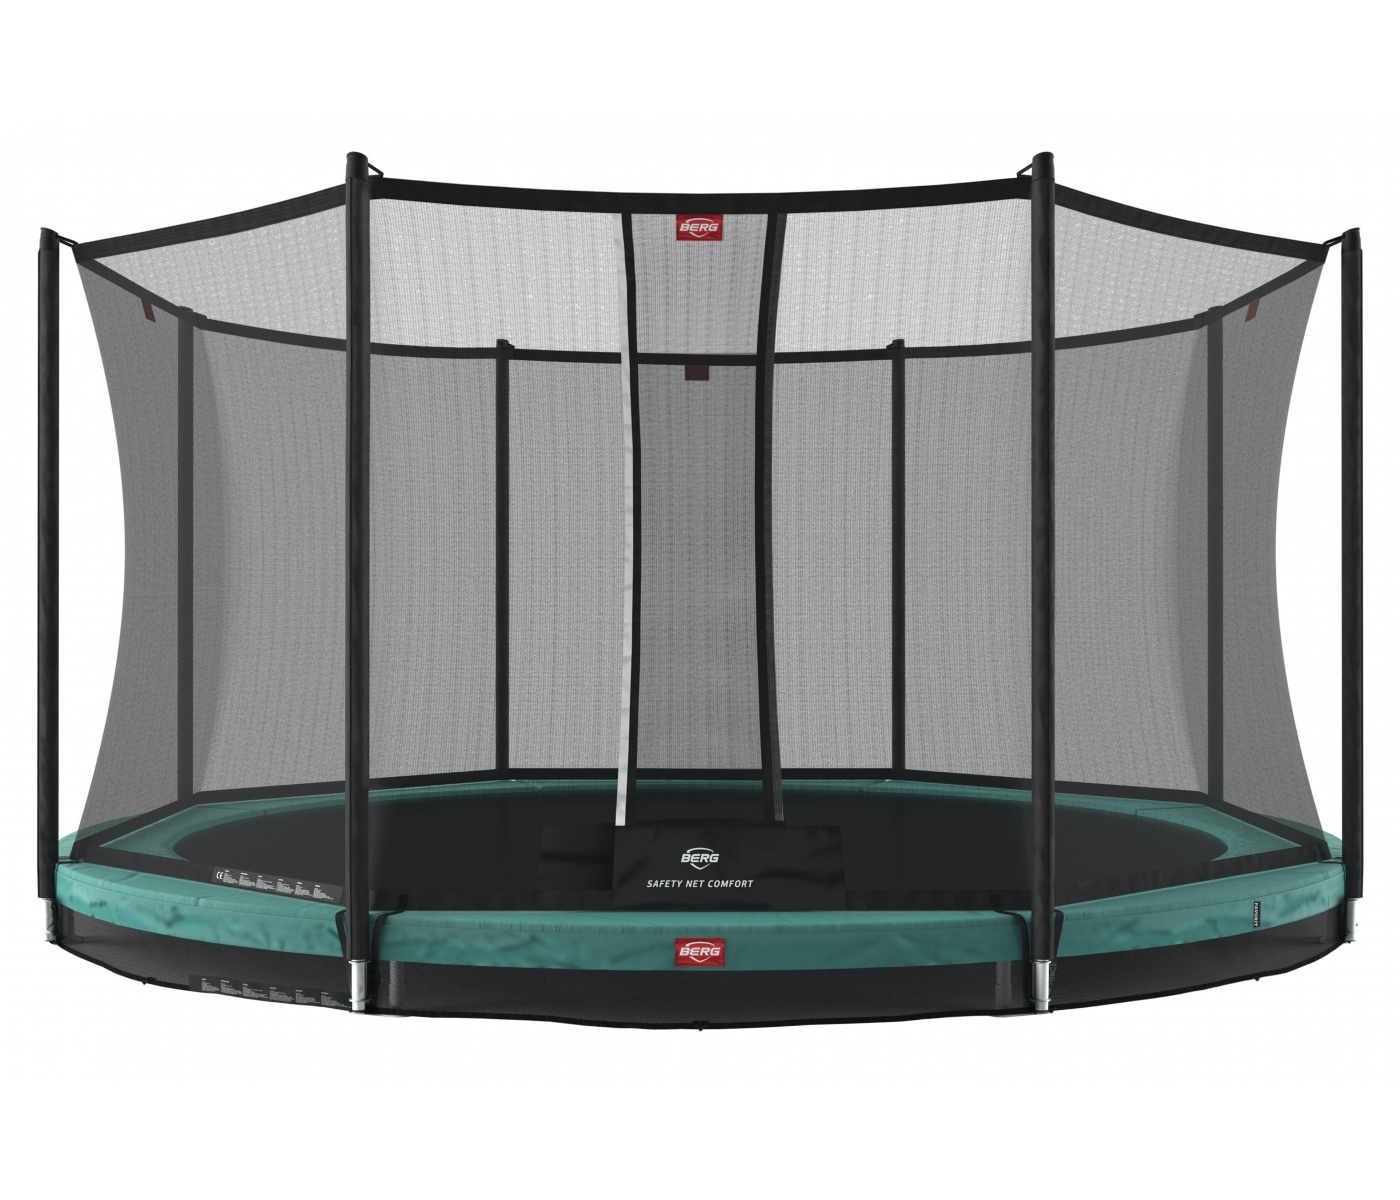 Berg Favorit InGround 430 cm + Safety Net Comfort